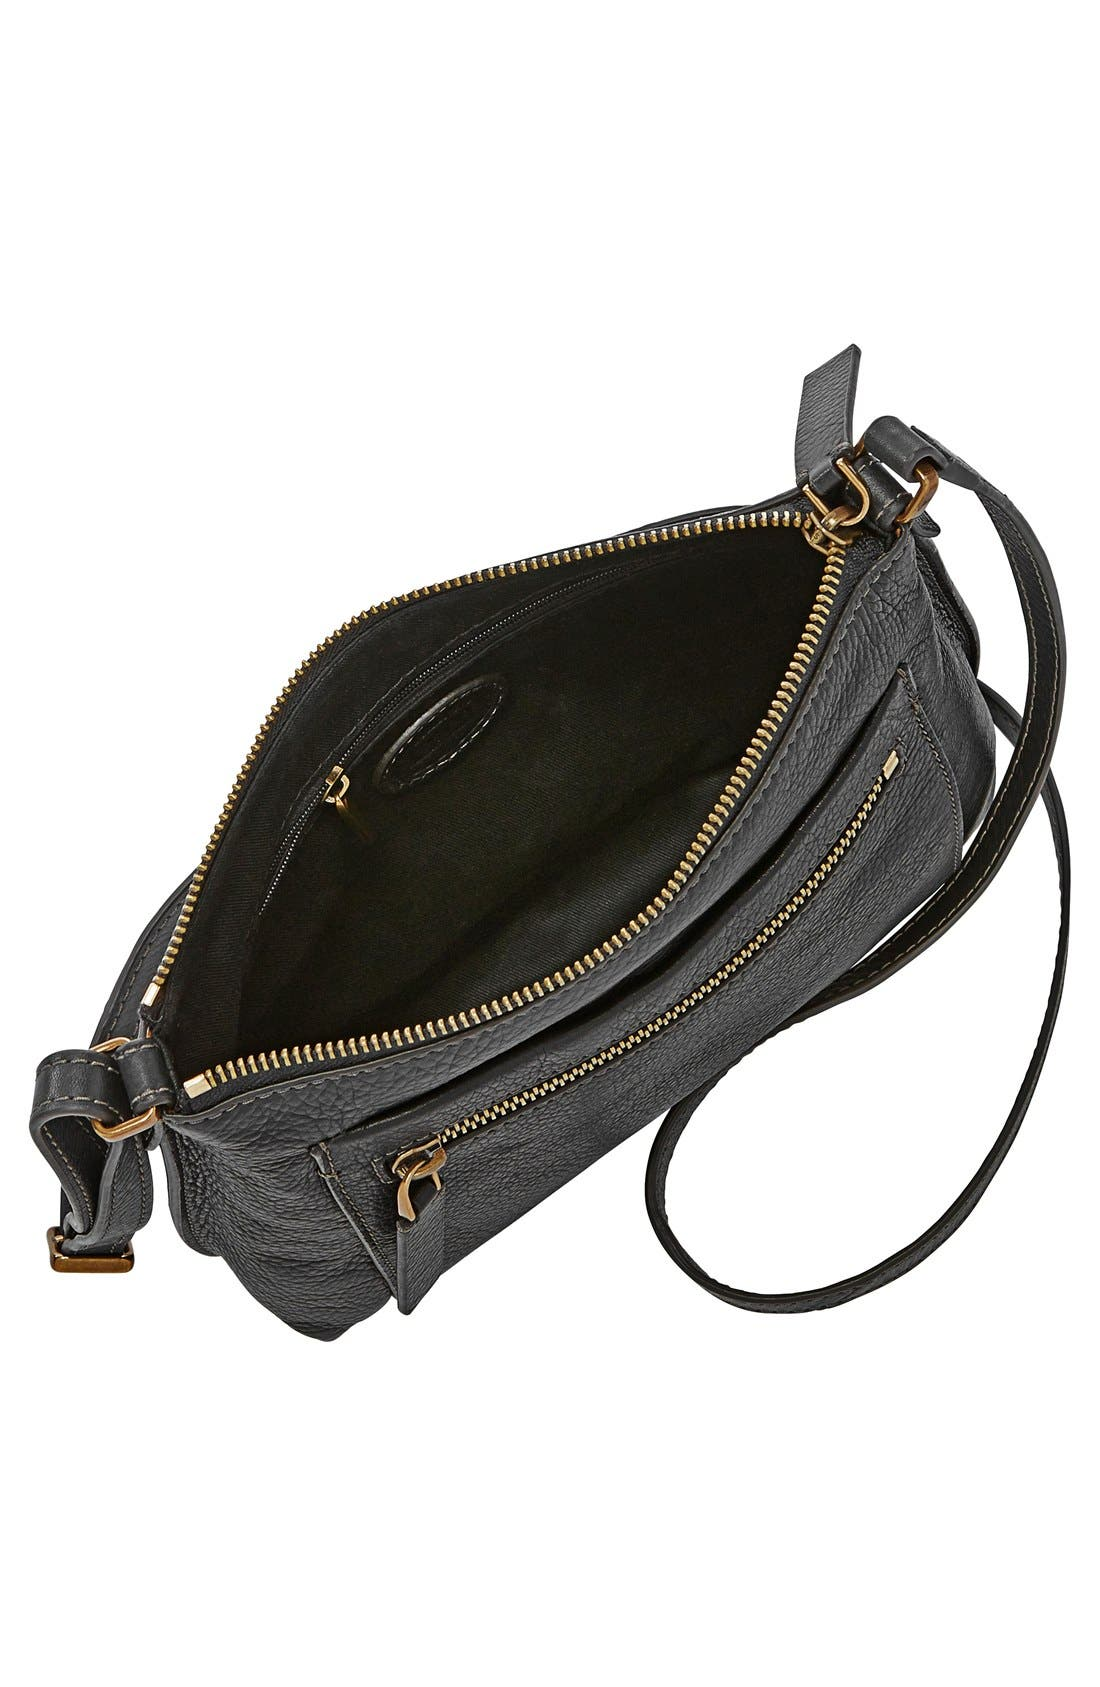 'Vickery' Leather Crossbody Bag,                             Alternate thumbnail 3, color,                             001